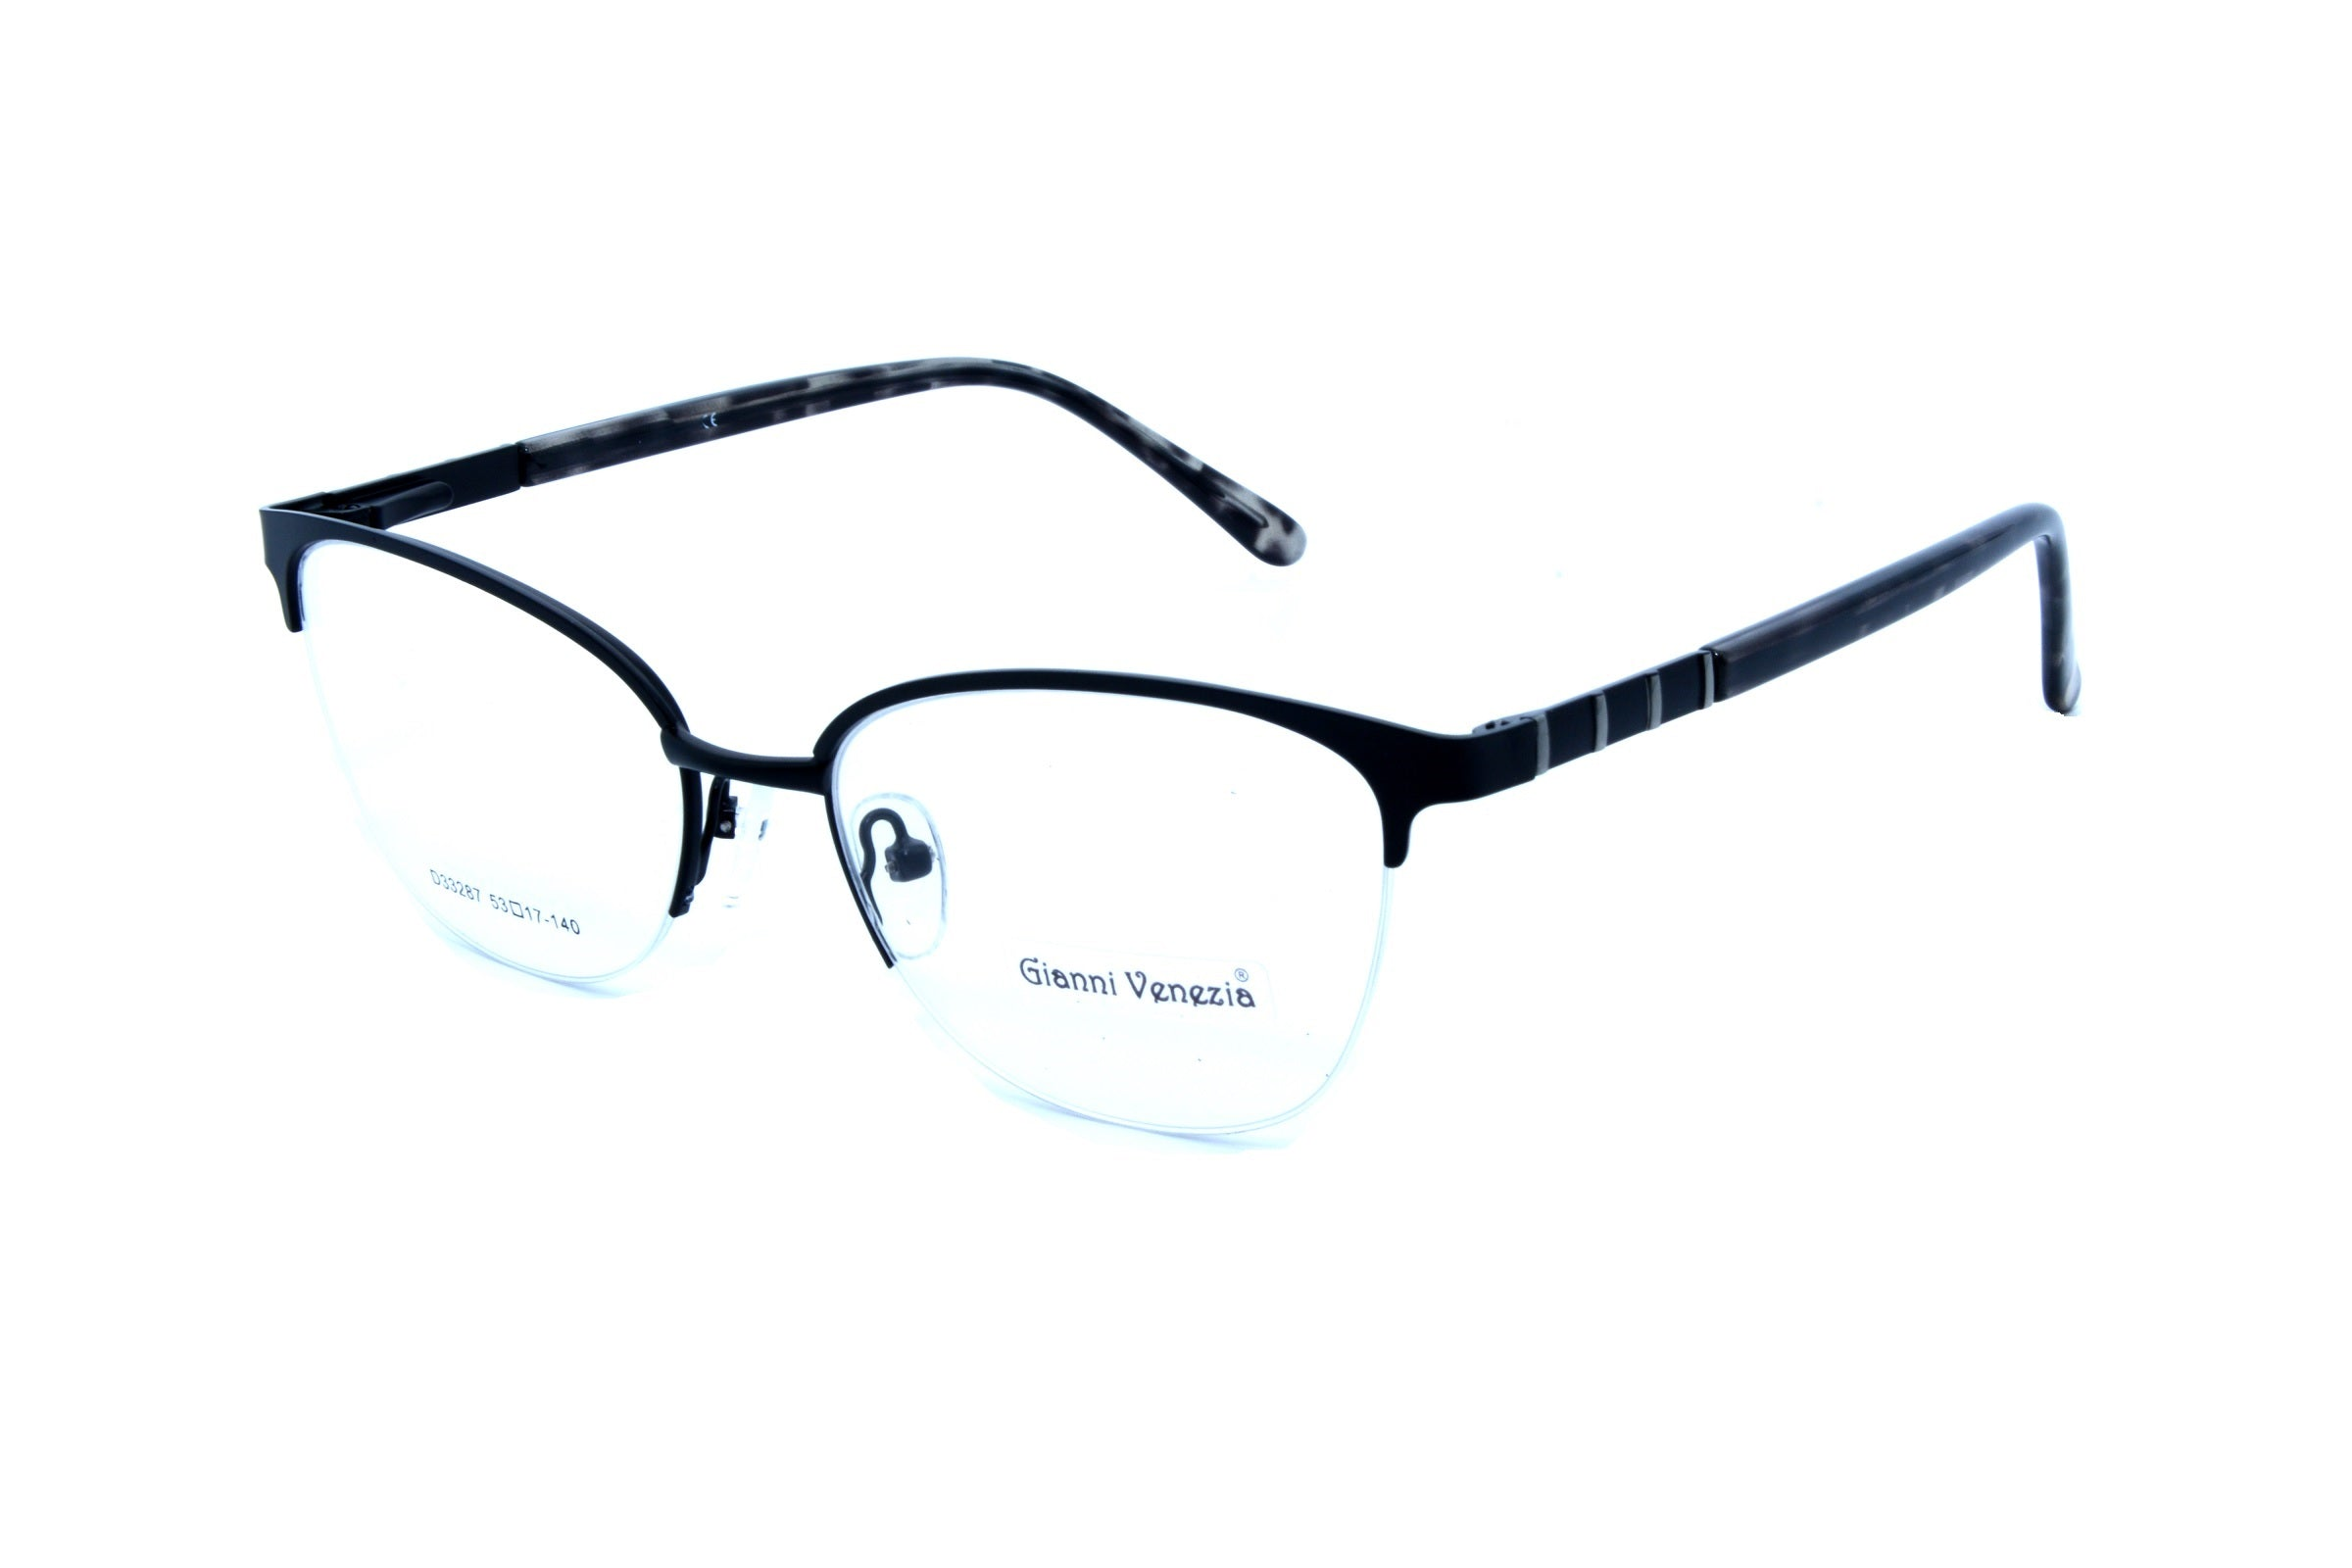 Gianni Venezia eyewear D33287, C1 - Optics Trading